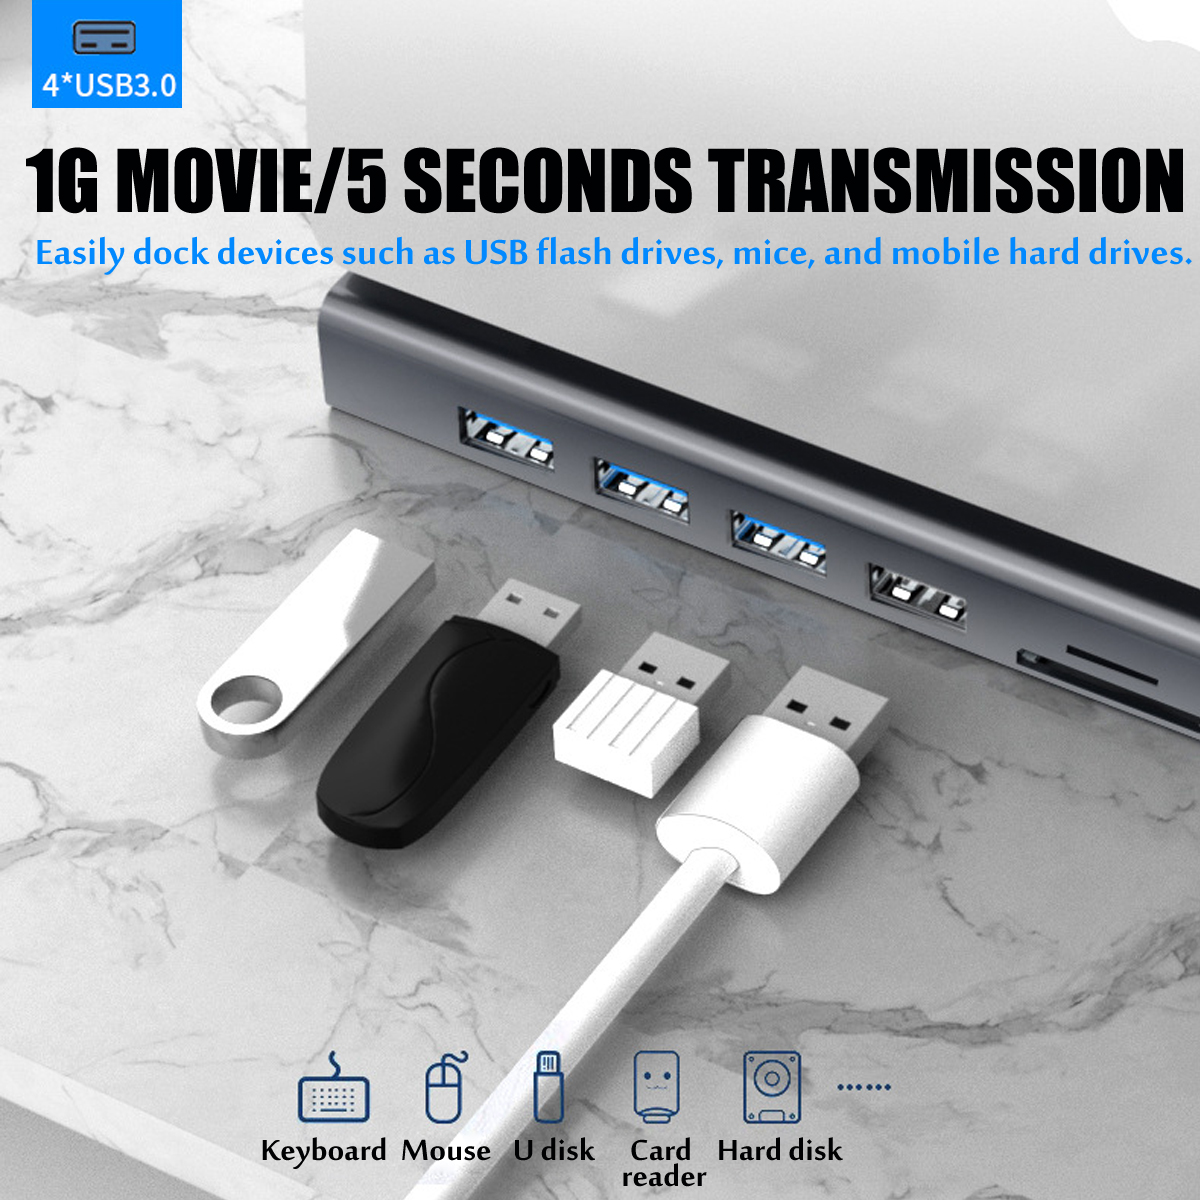 Bakeey Type-c HDMI 4K HD RJ45VG 11 in 1 Docking Dtation Network Port USB 3.0 HUB Adapter For PC Tablet